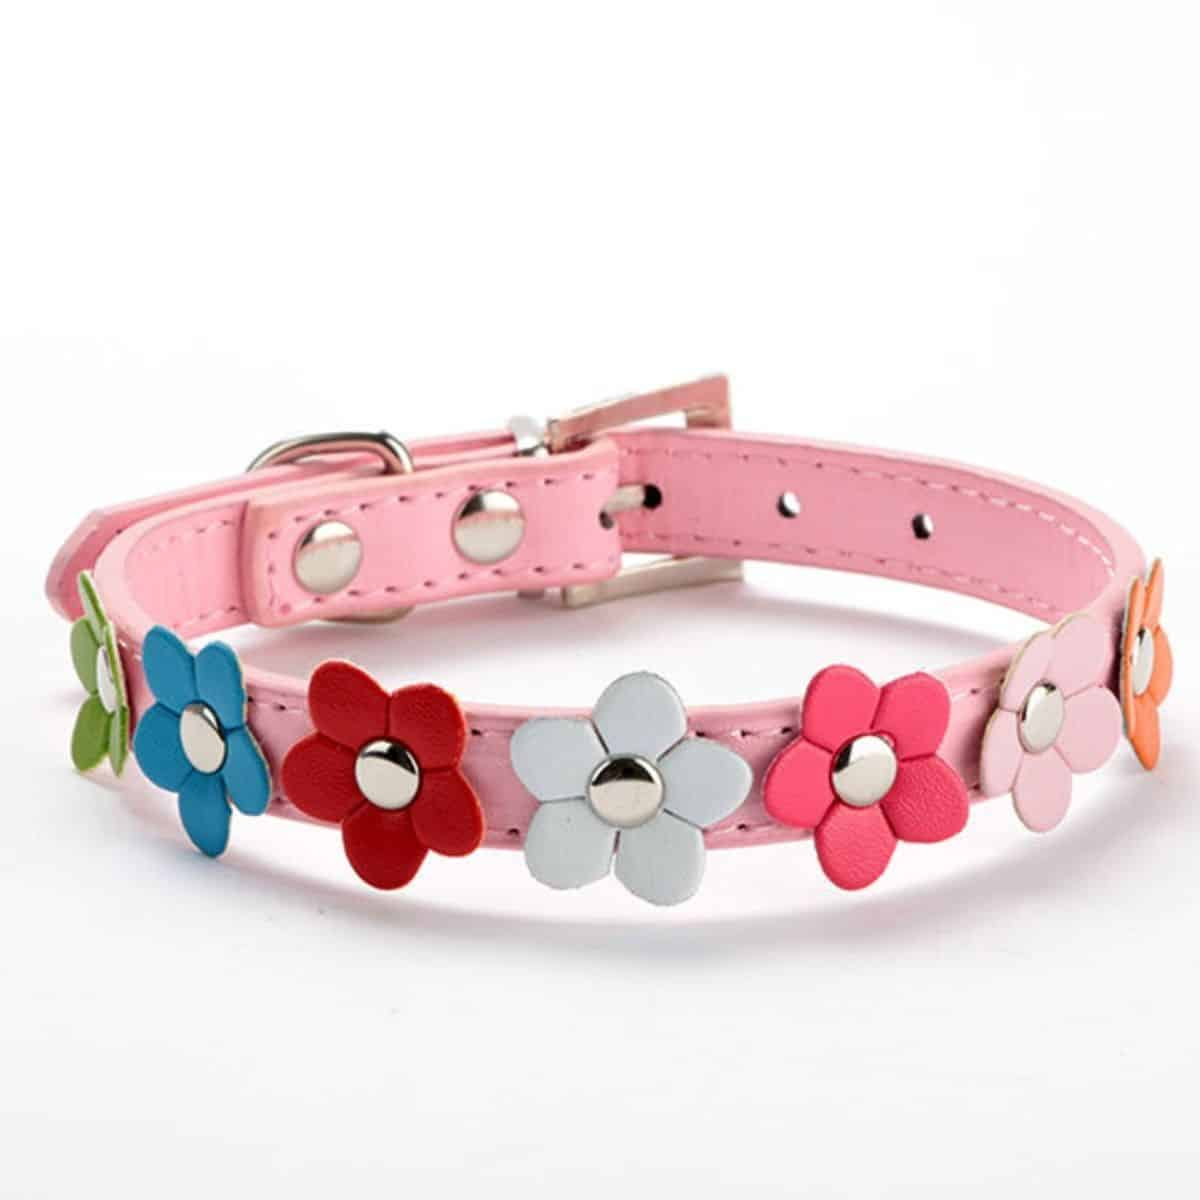 Baby pink dog collar with colorful flowers